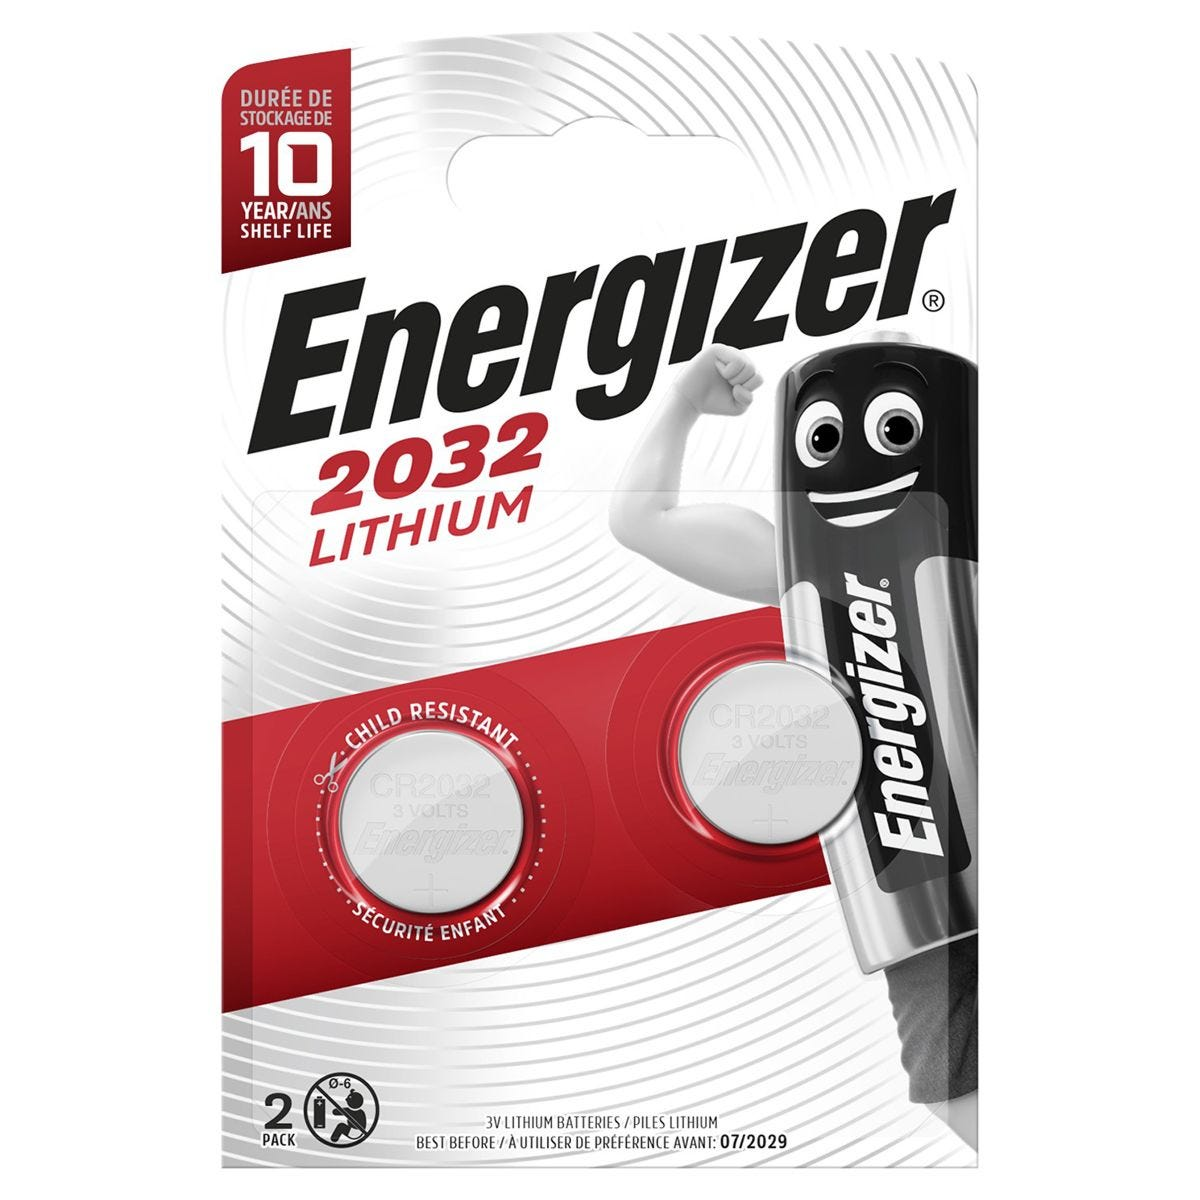 Energizer 2032 Lithium Batteries - 2 Pack